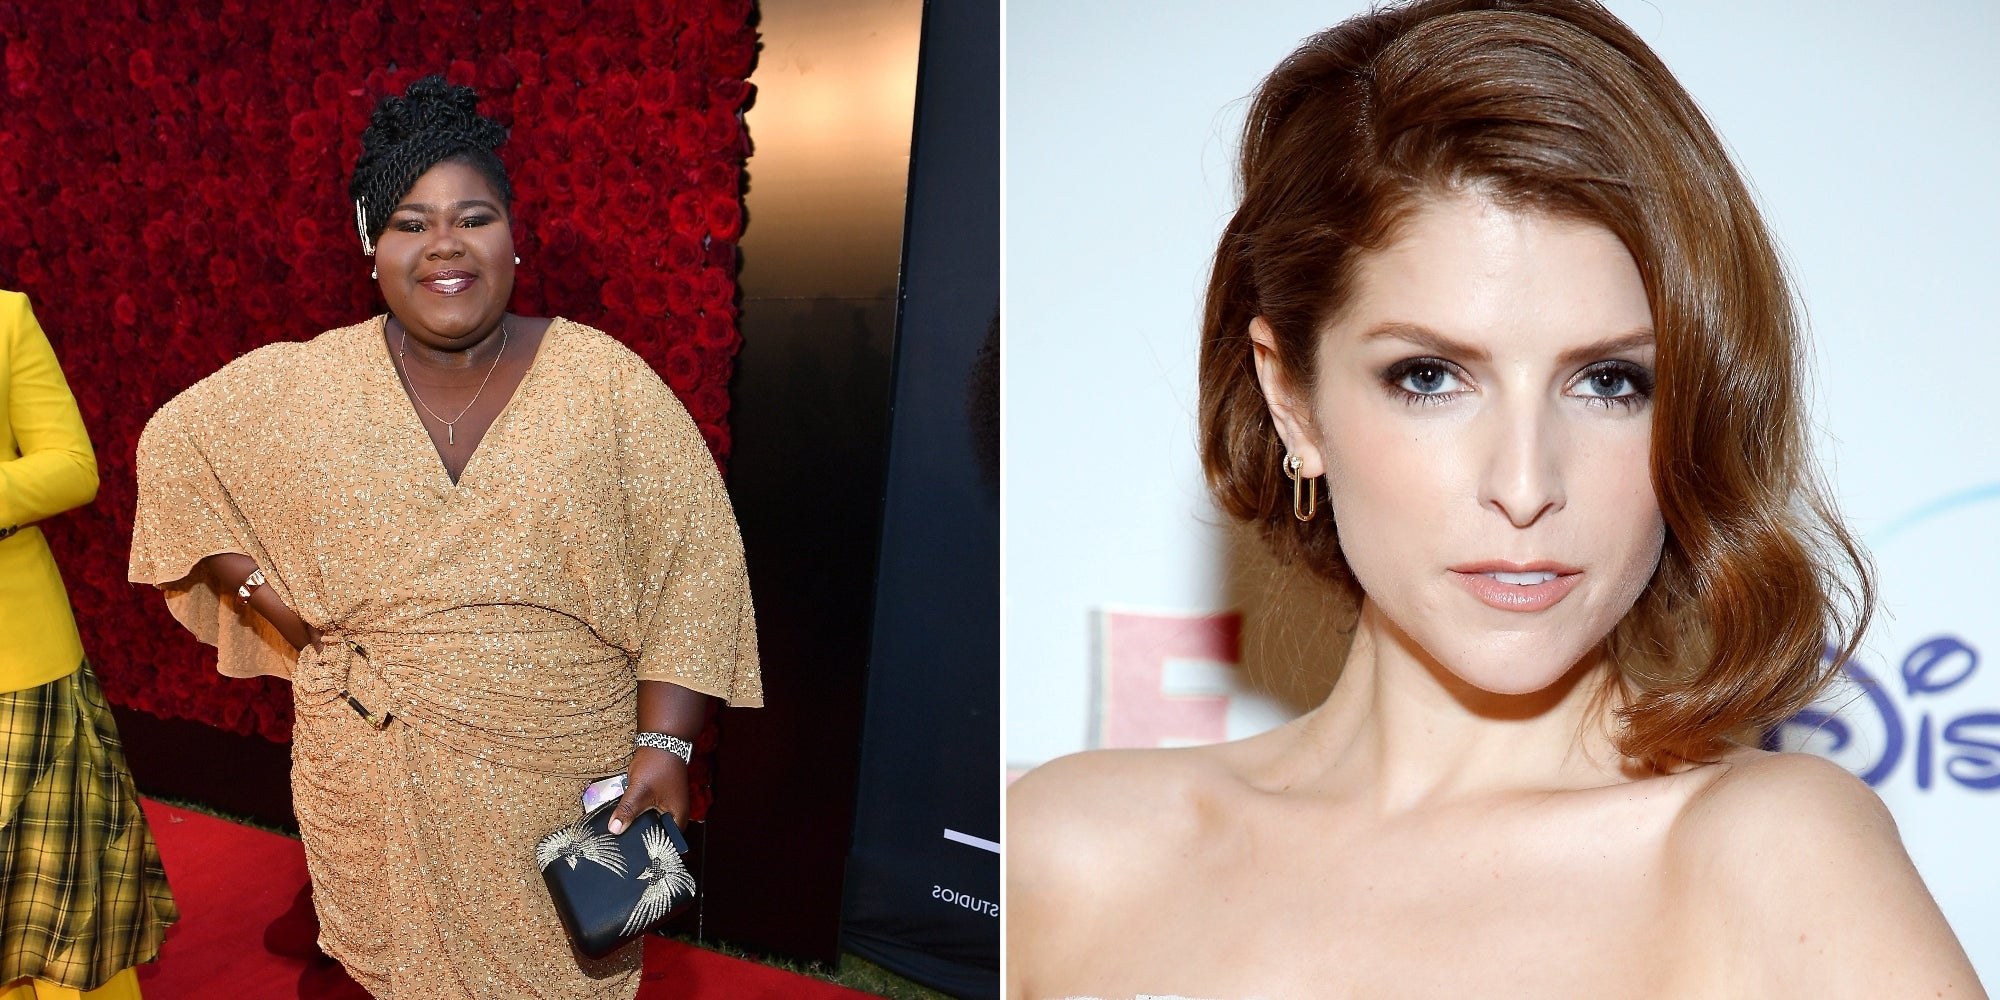 Gabourey Sidibe asks why Anna Kendrick's career took off when the 'Hollywood seas did not part for me'